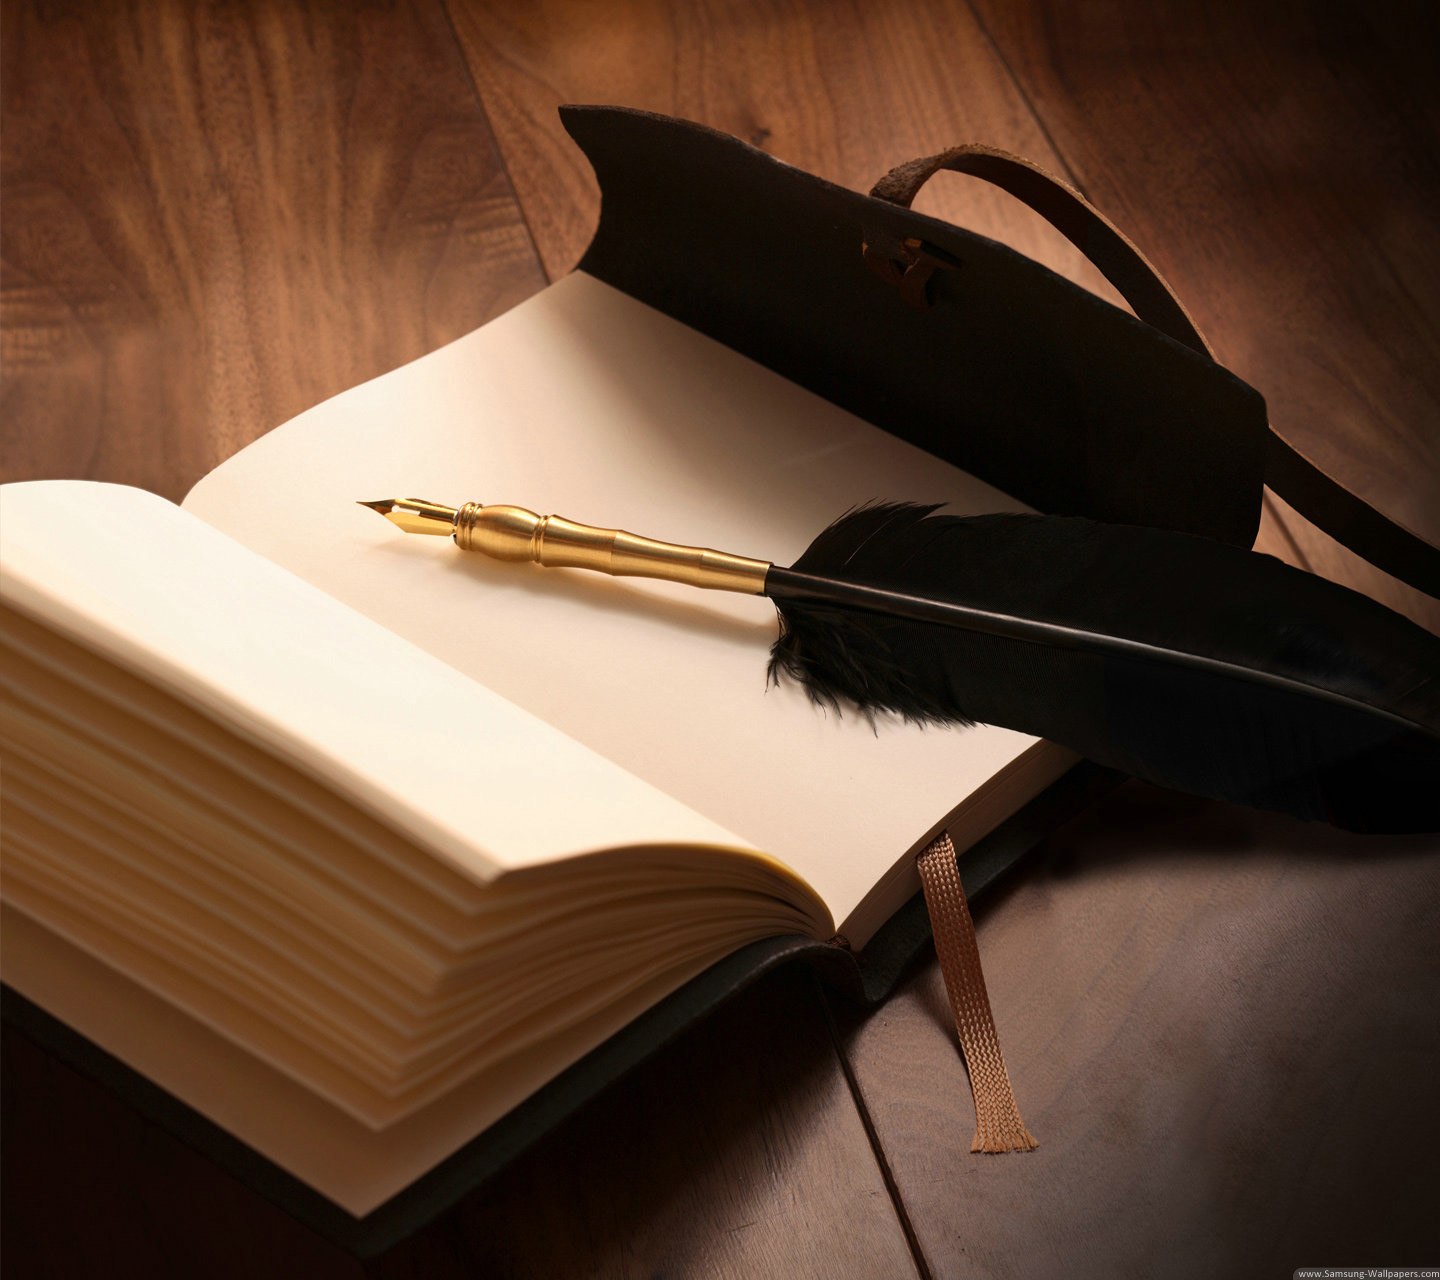 Feather Quill on open Journal